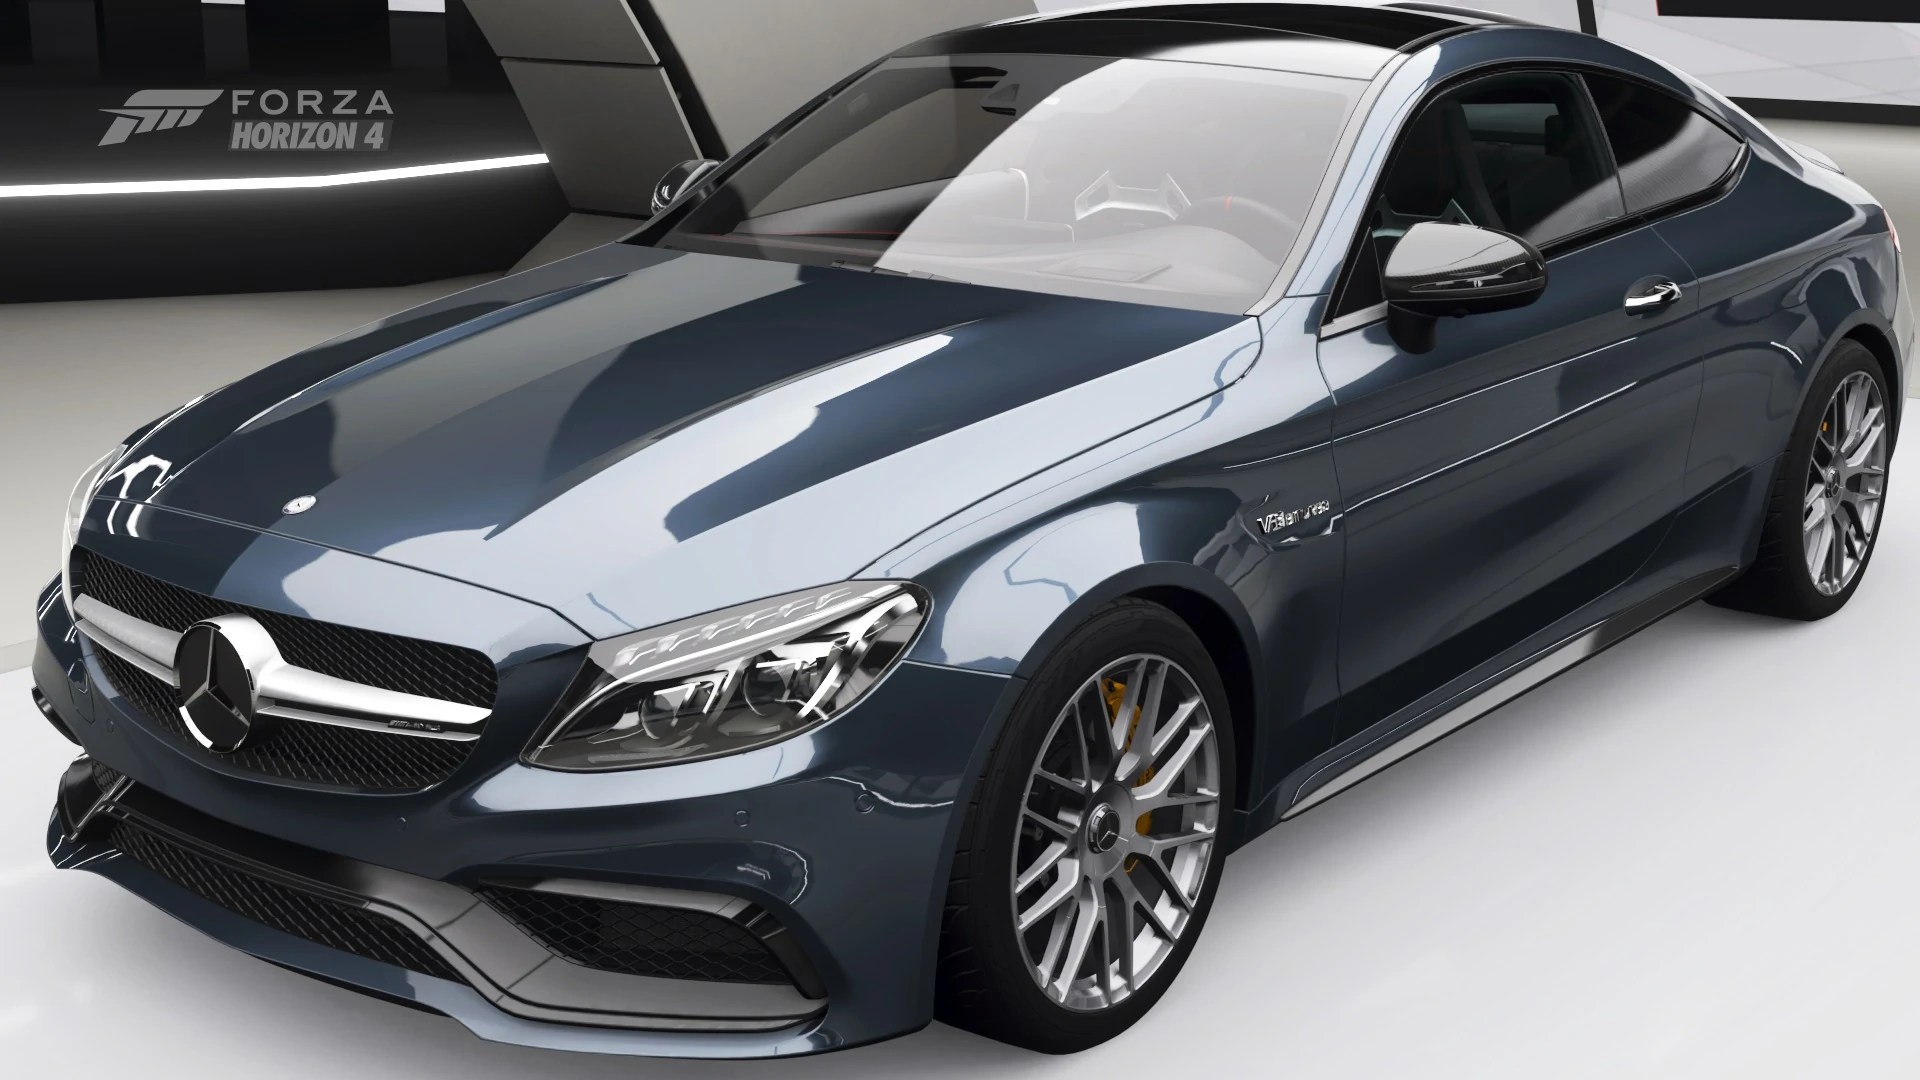 hight resolution of mercedes amg c 63 s coup in forza horizon 4